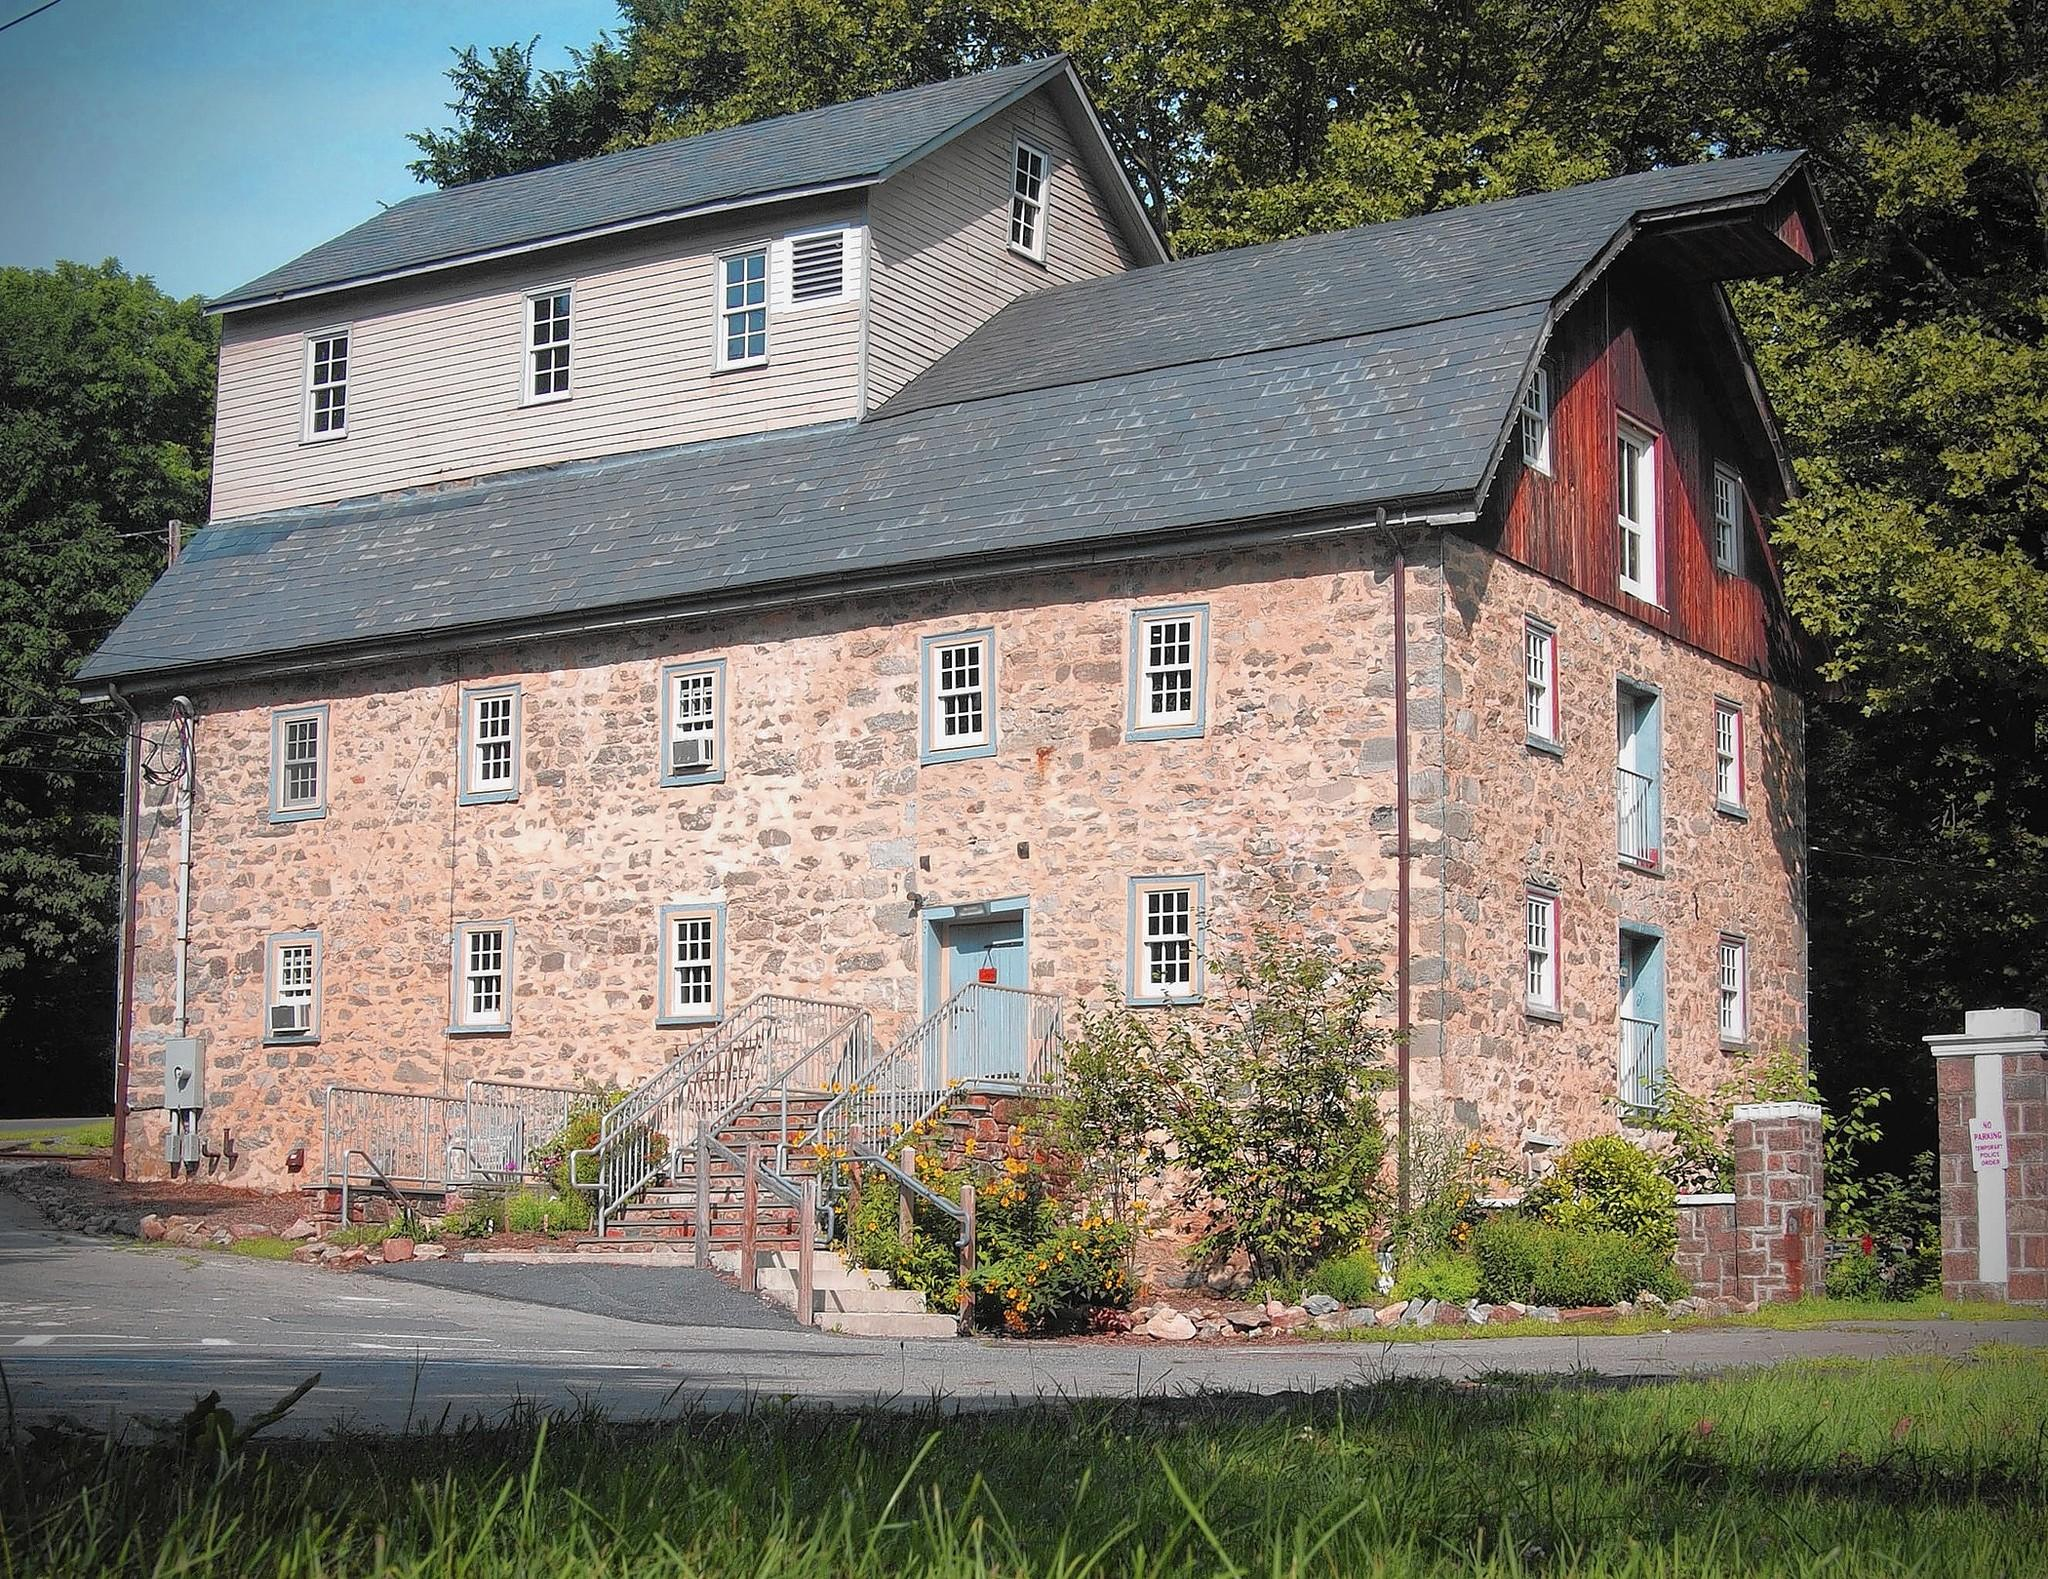 The Gertrude B. Fox Environmental Center at Illick's Mill in Bethlehem is going to close.